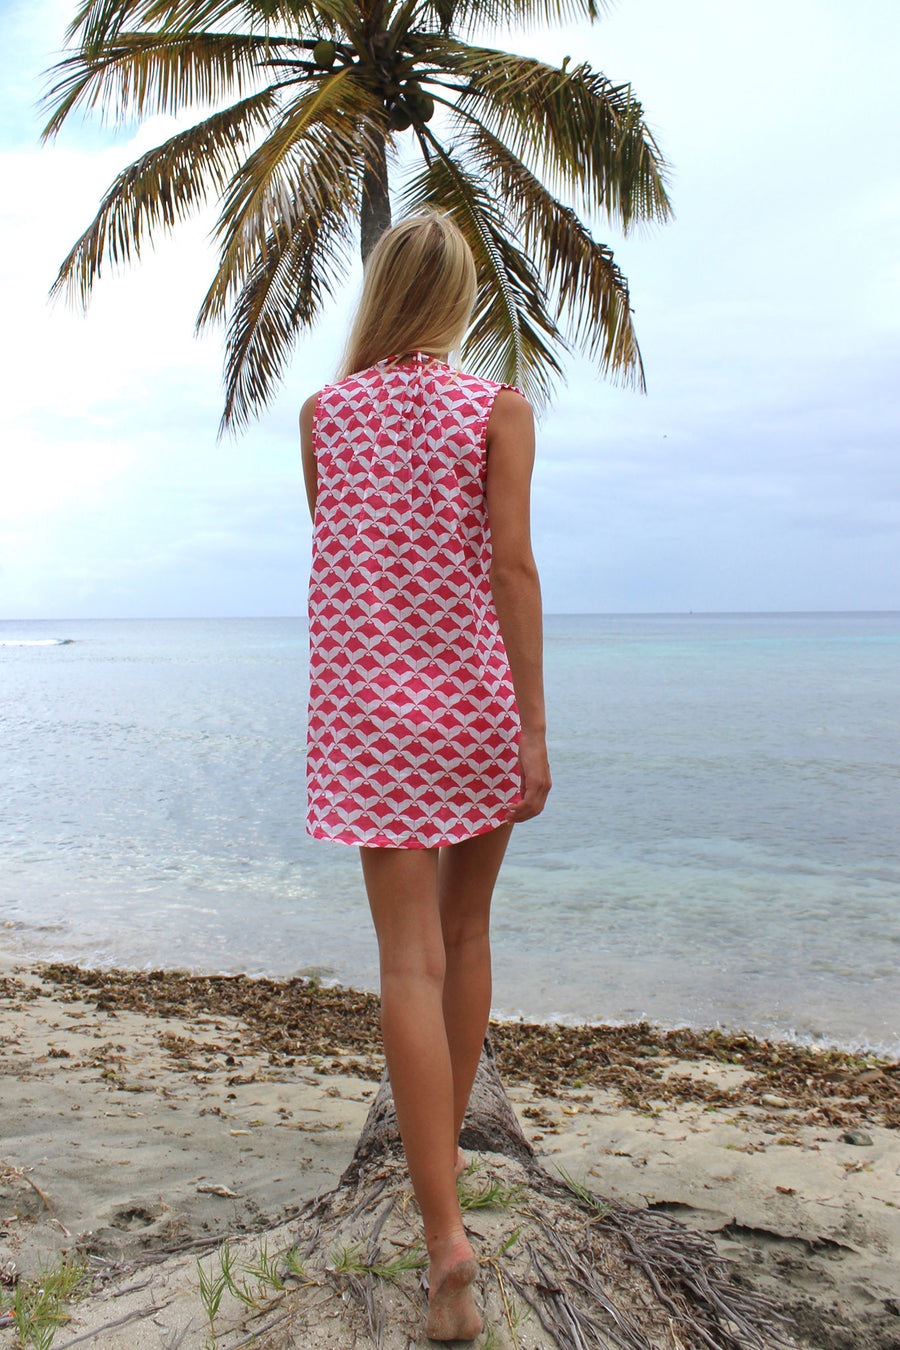 Womens Linen Beach Dress: MANTA RAY - RED sitting on palm tree Mustique